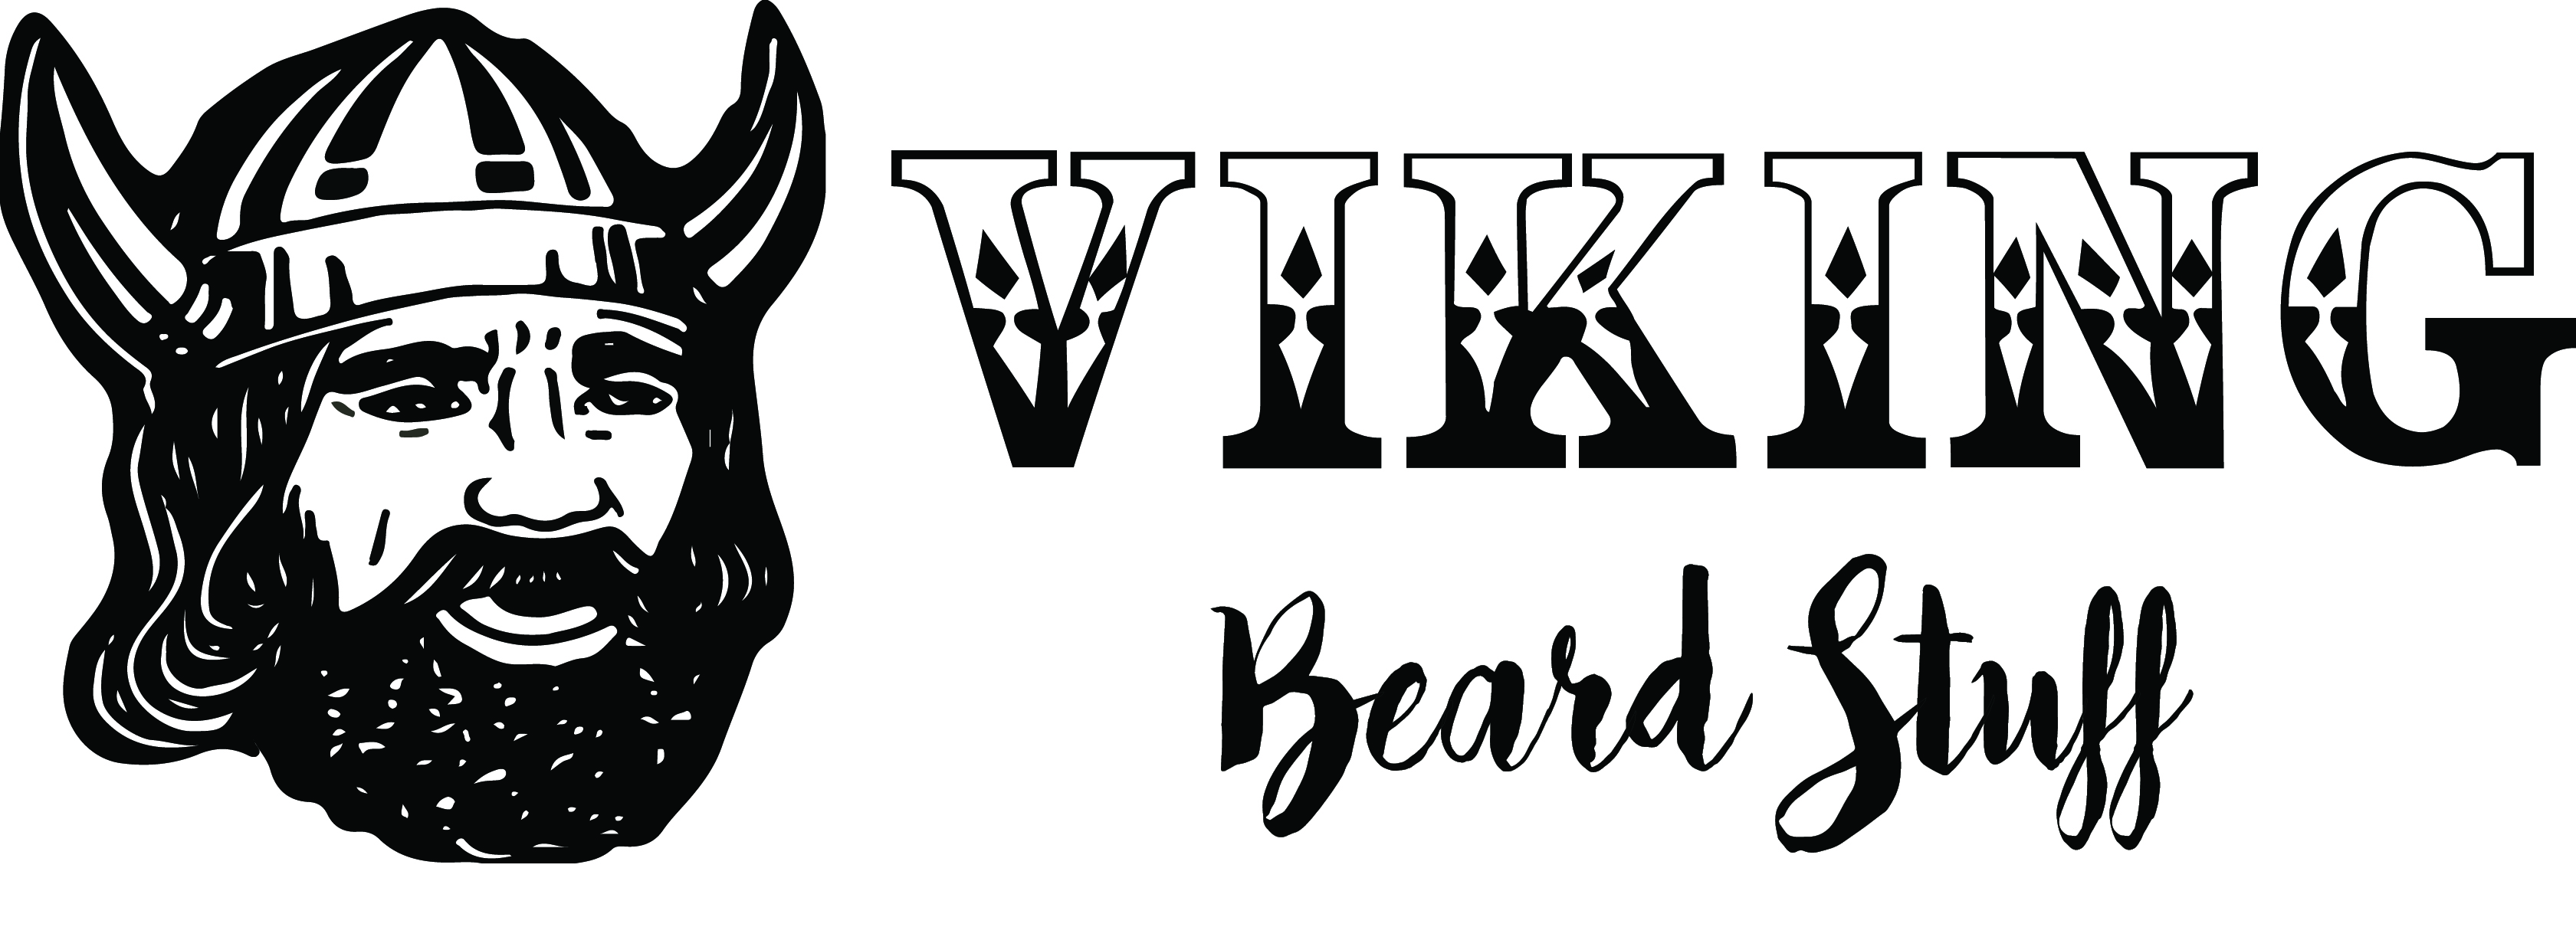 Viking Beard Stuff